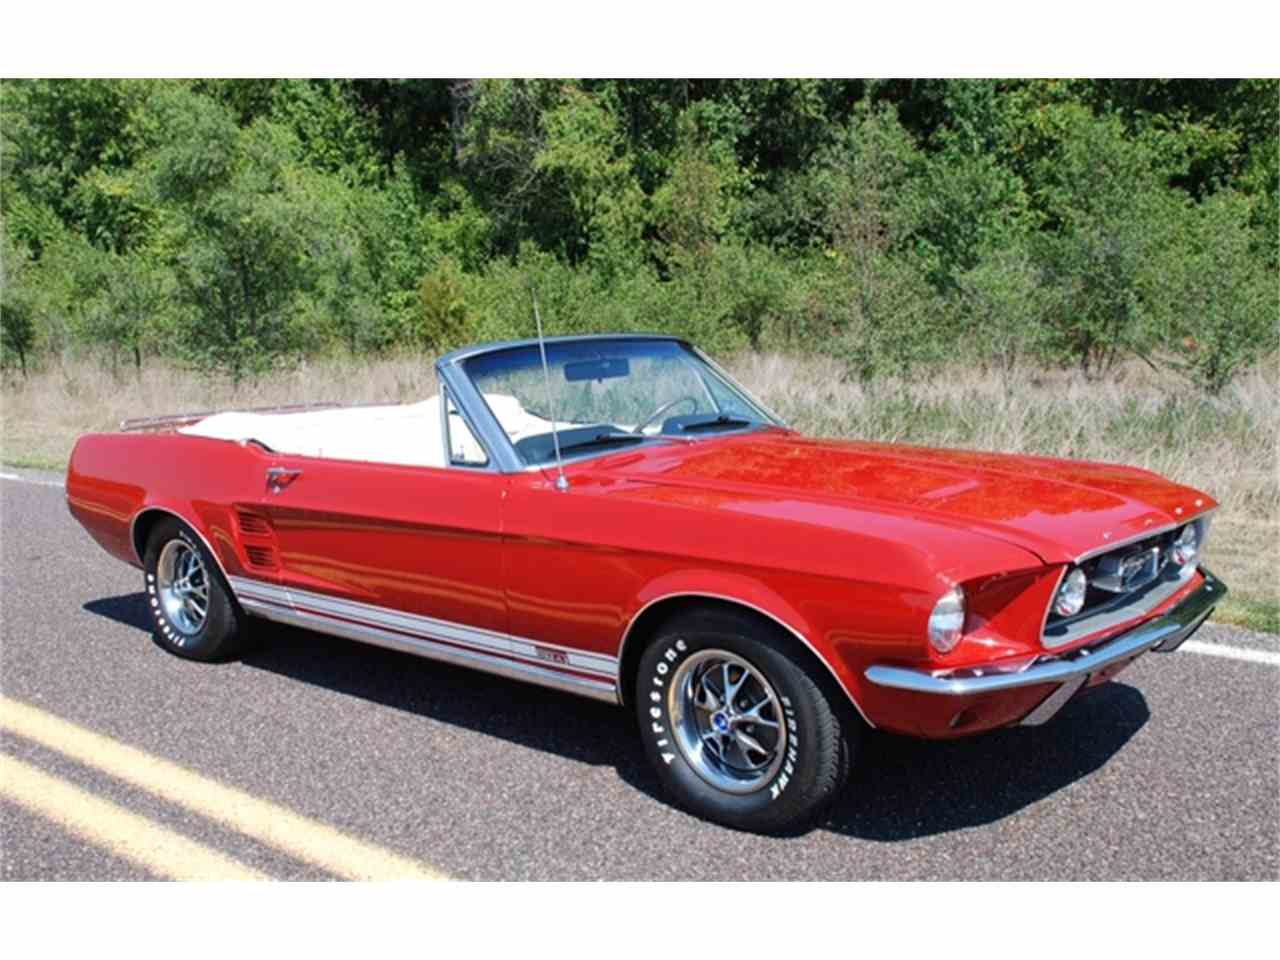 Large Picture of Classic '67 Ford Mustang located in Naples Florida - $55,000.00 - J20T